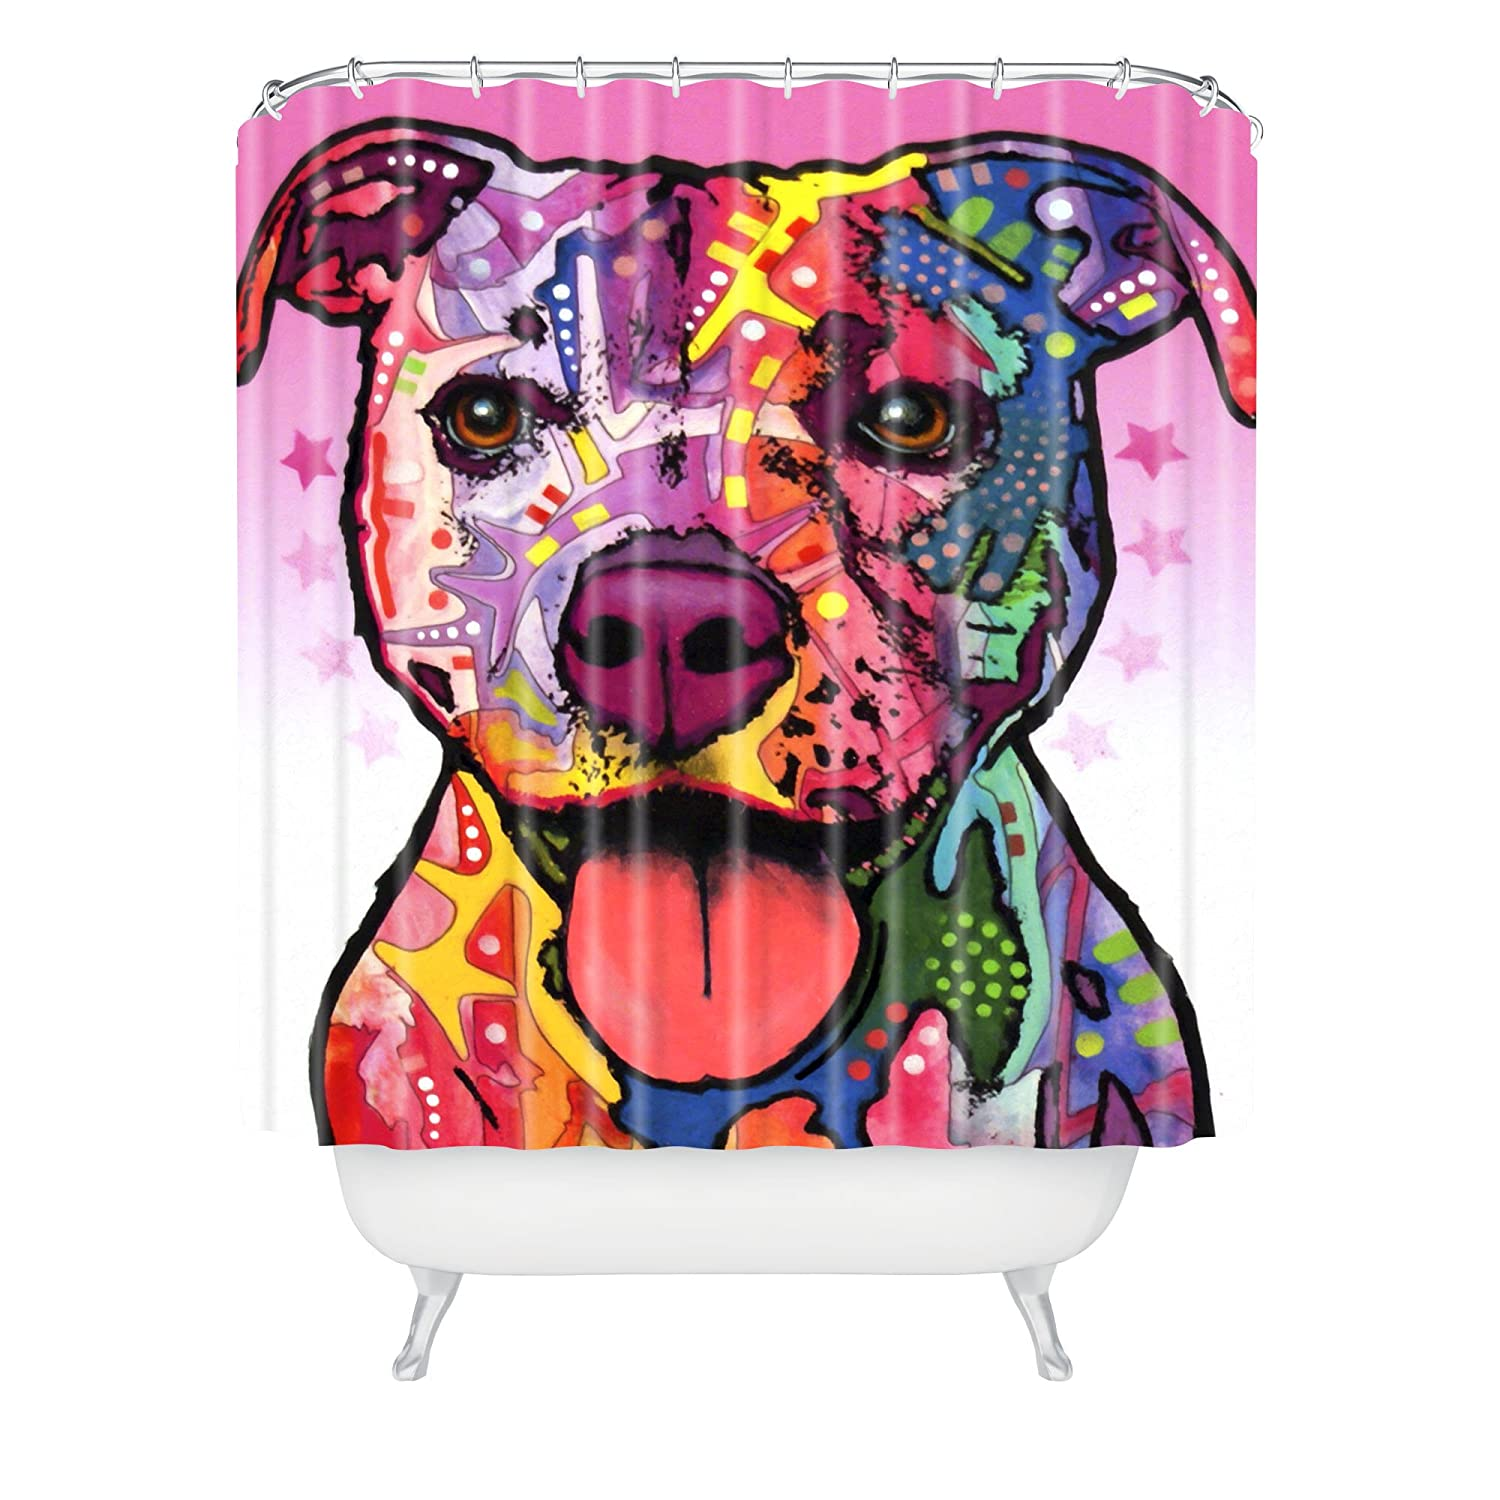 The Coolest Shower Curtains Ever – SKARRO – Be Fun – Live Life in ...